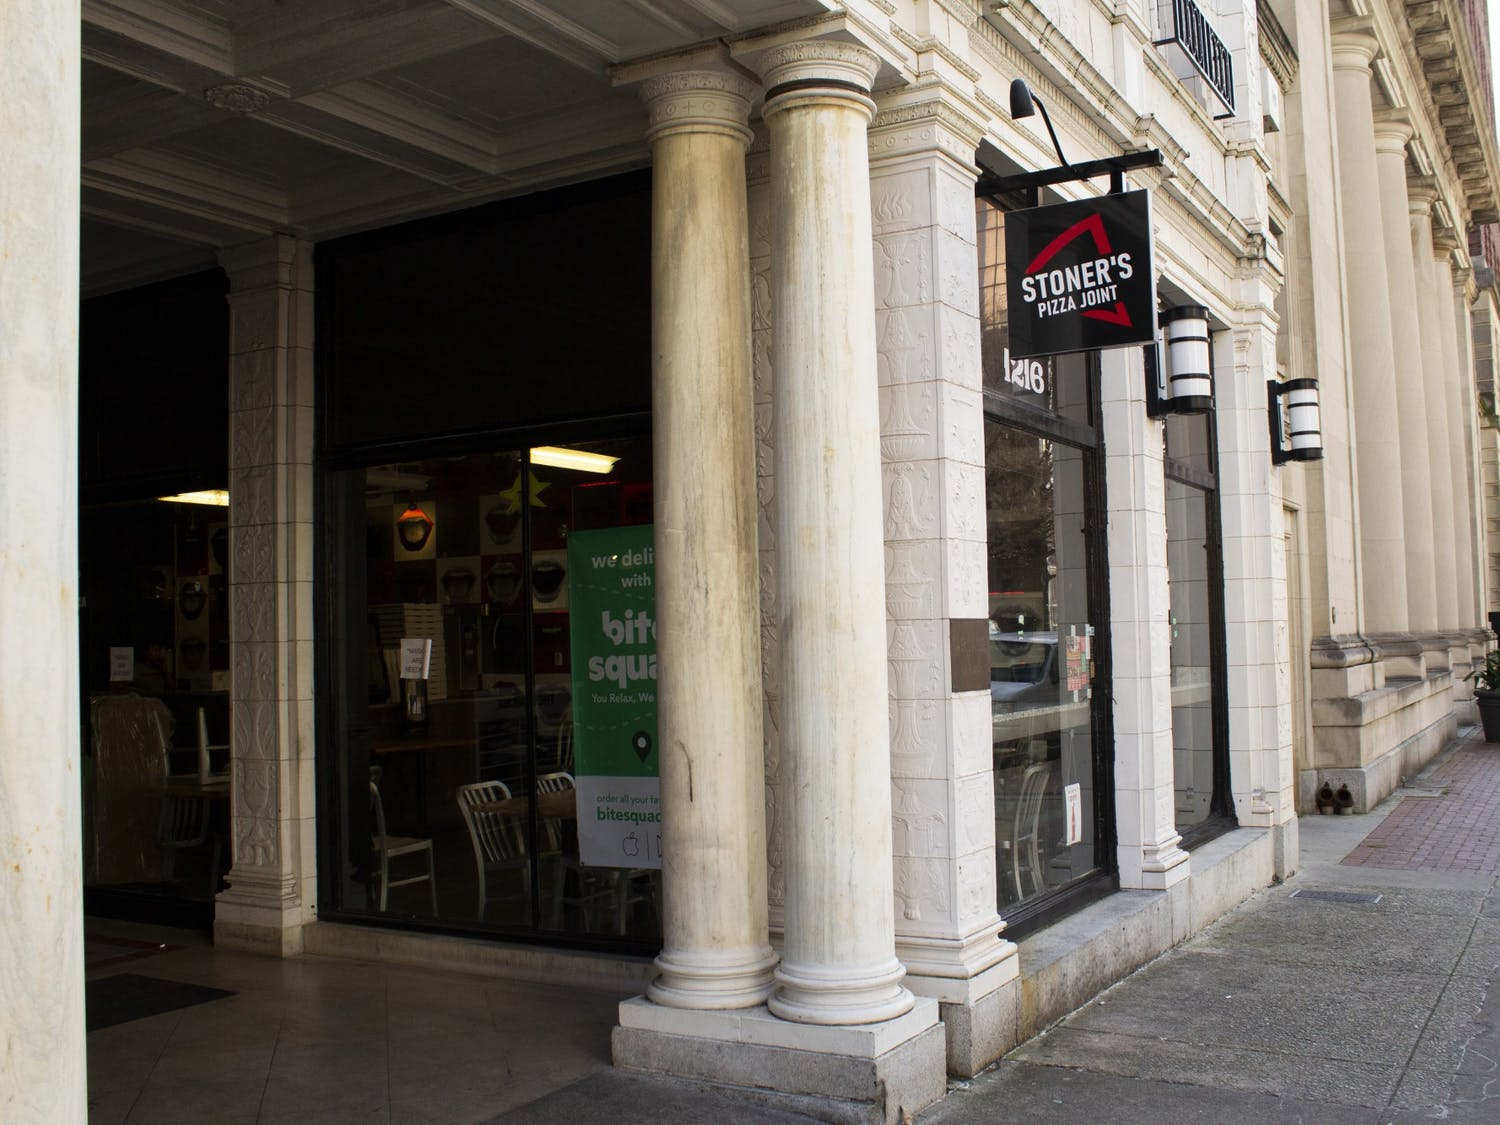 Located at 1216 Washington St. inside The Arcade, Stoner's Pizza Joint is a mom-and-pop shop turned franchise that turns out pizza with fresh ingredients.